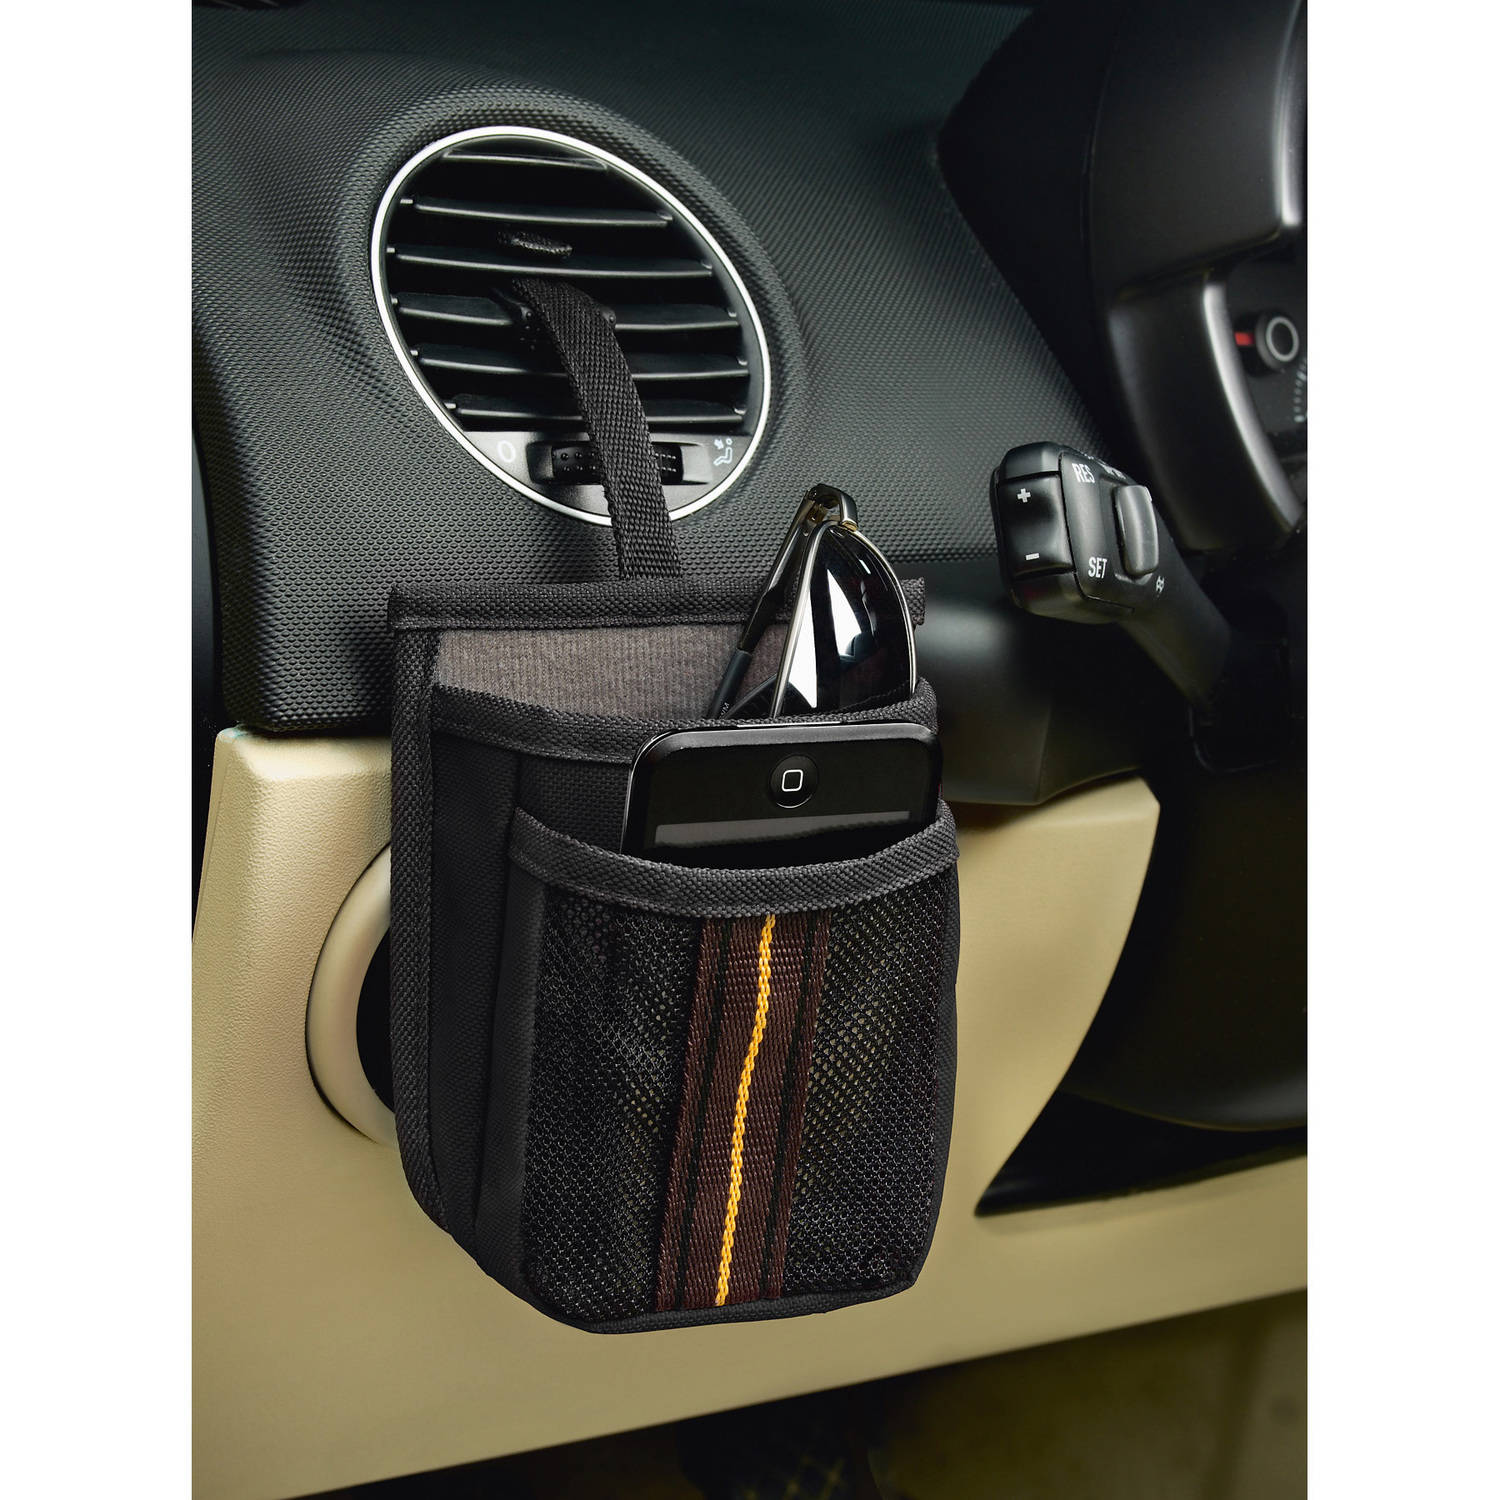 Image result for walmart car caddy